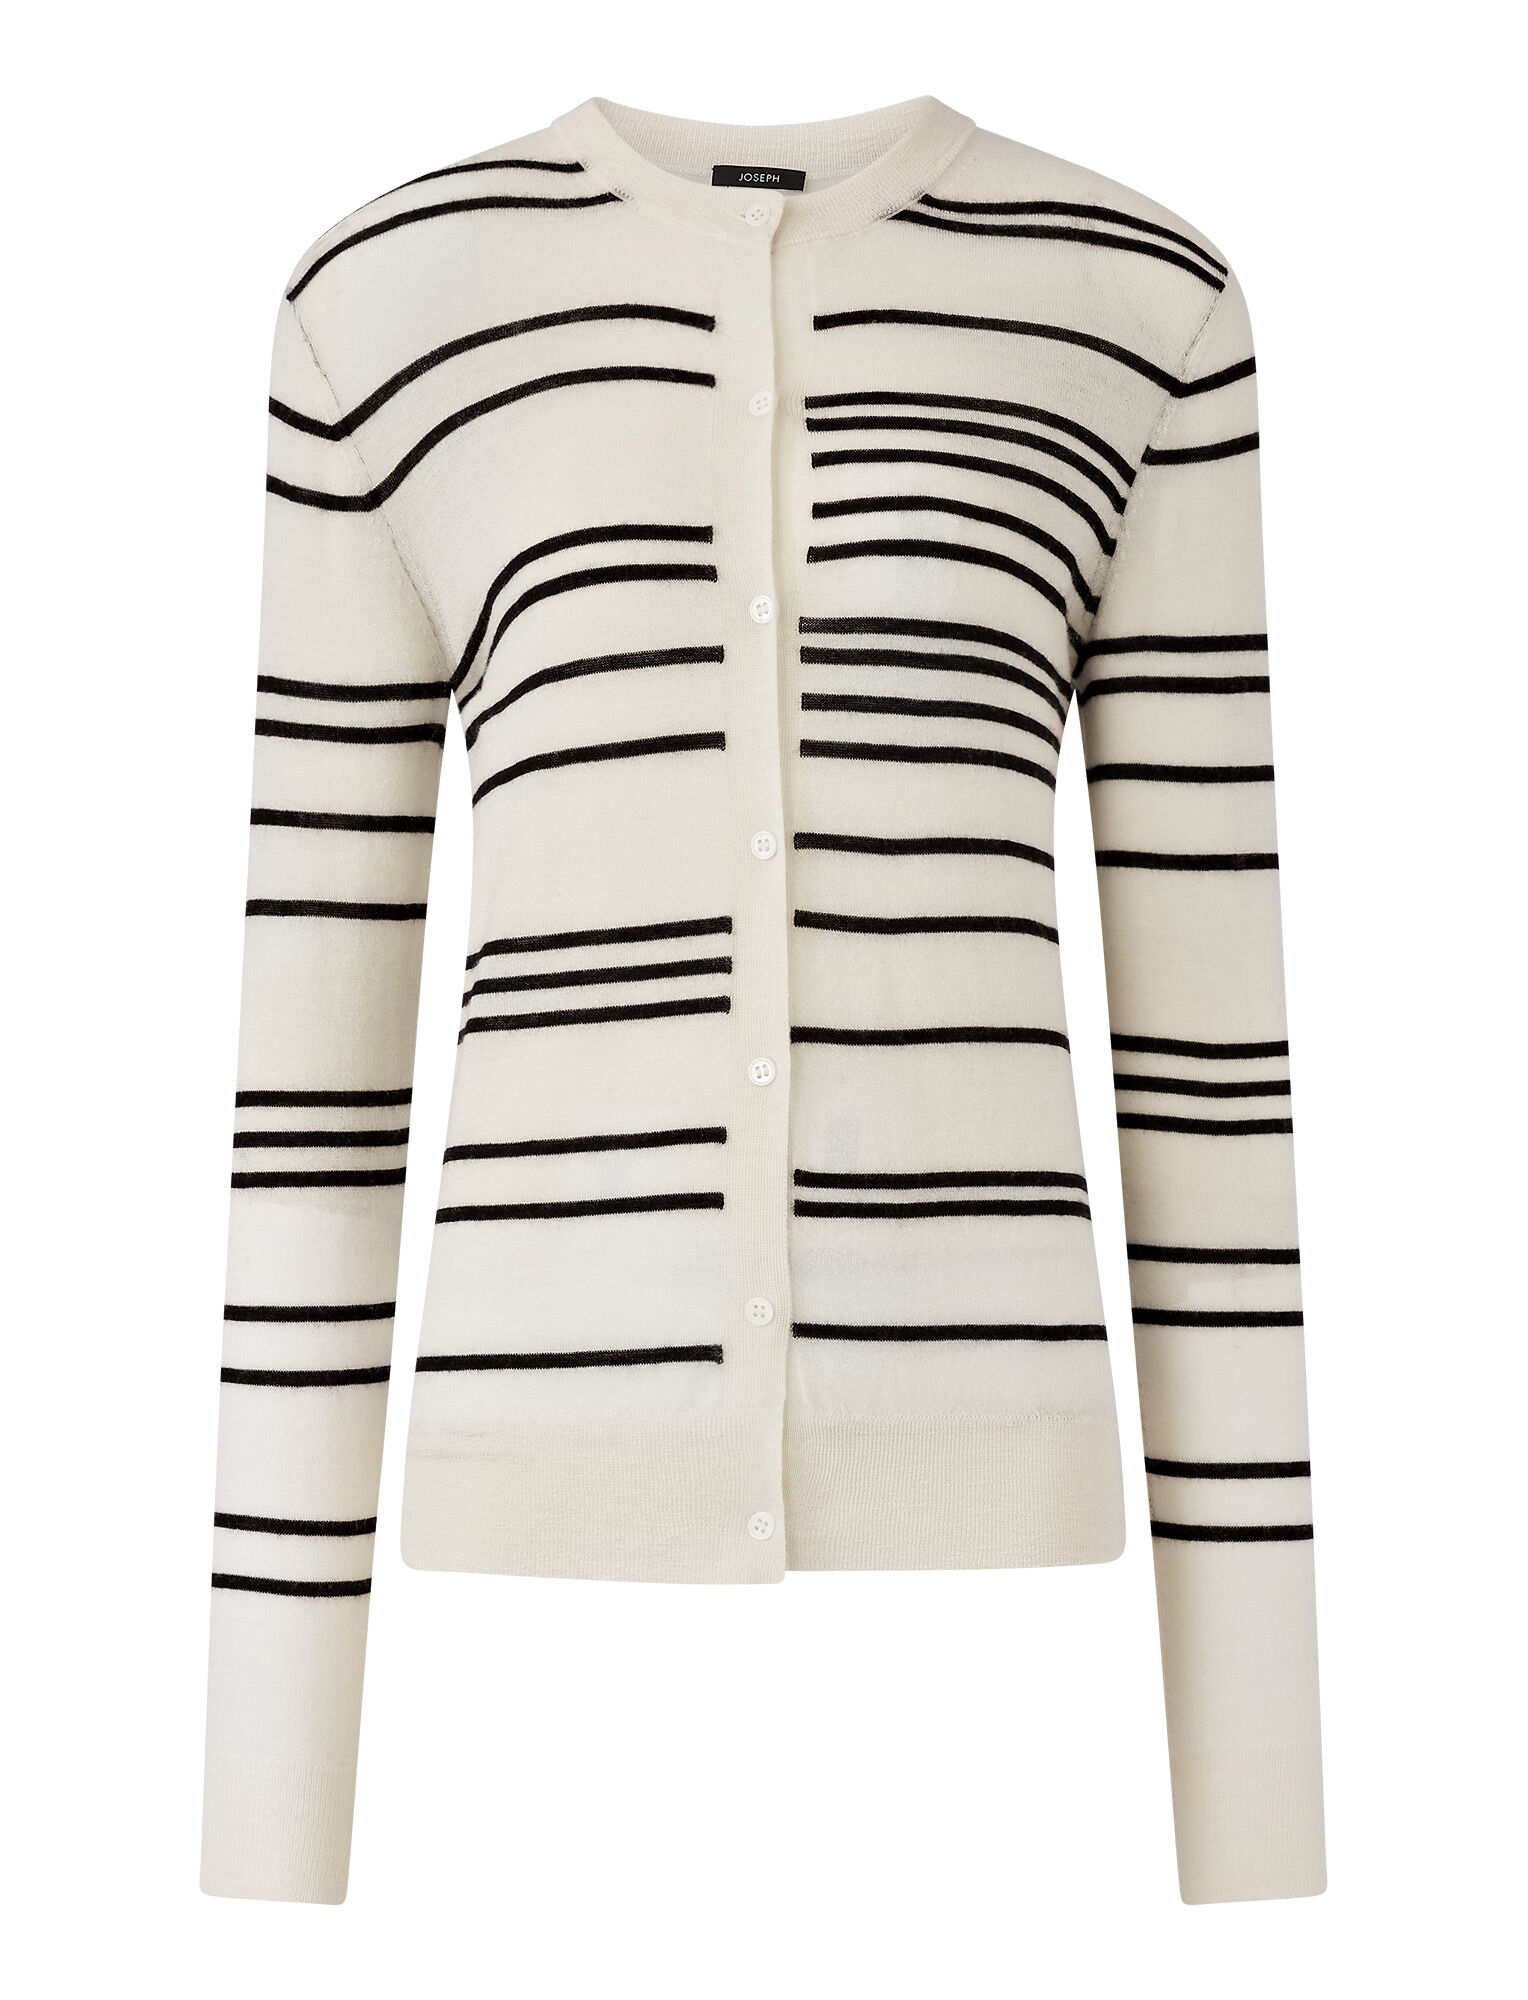 Joseph, Cashair Stripe Cardigan, in IVORY COMBO